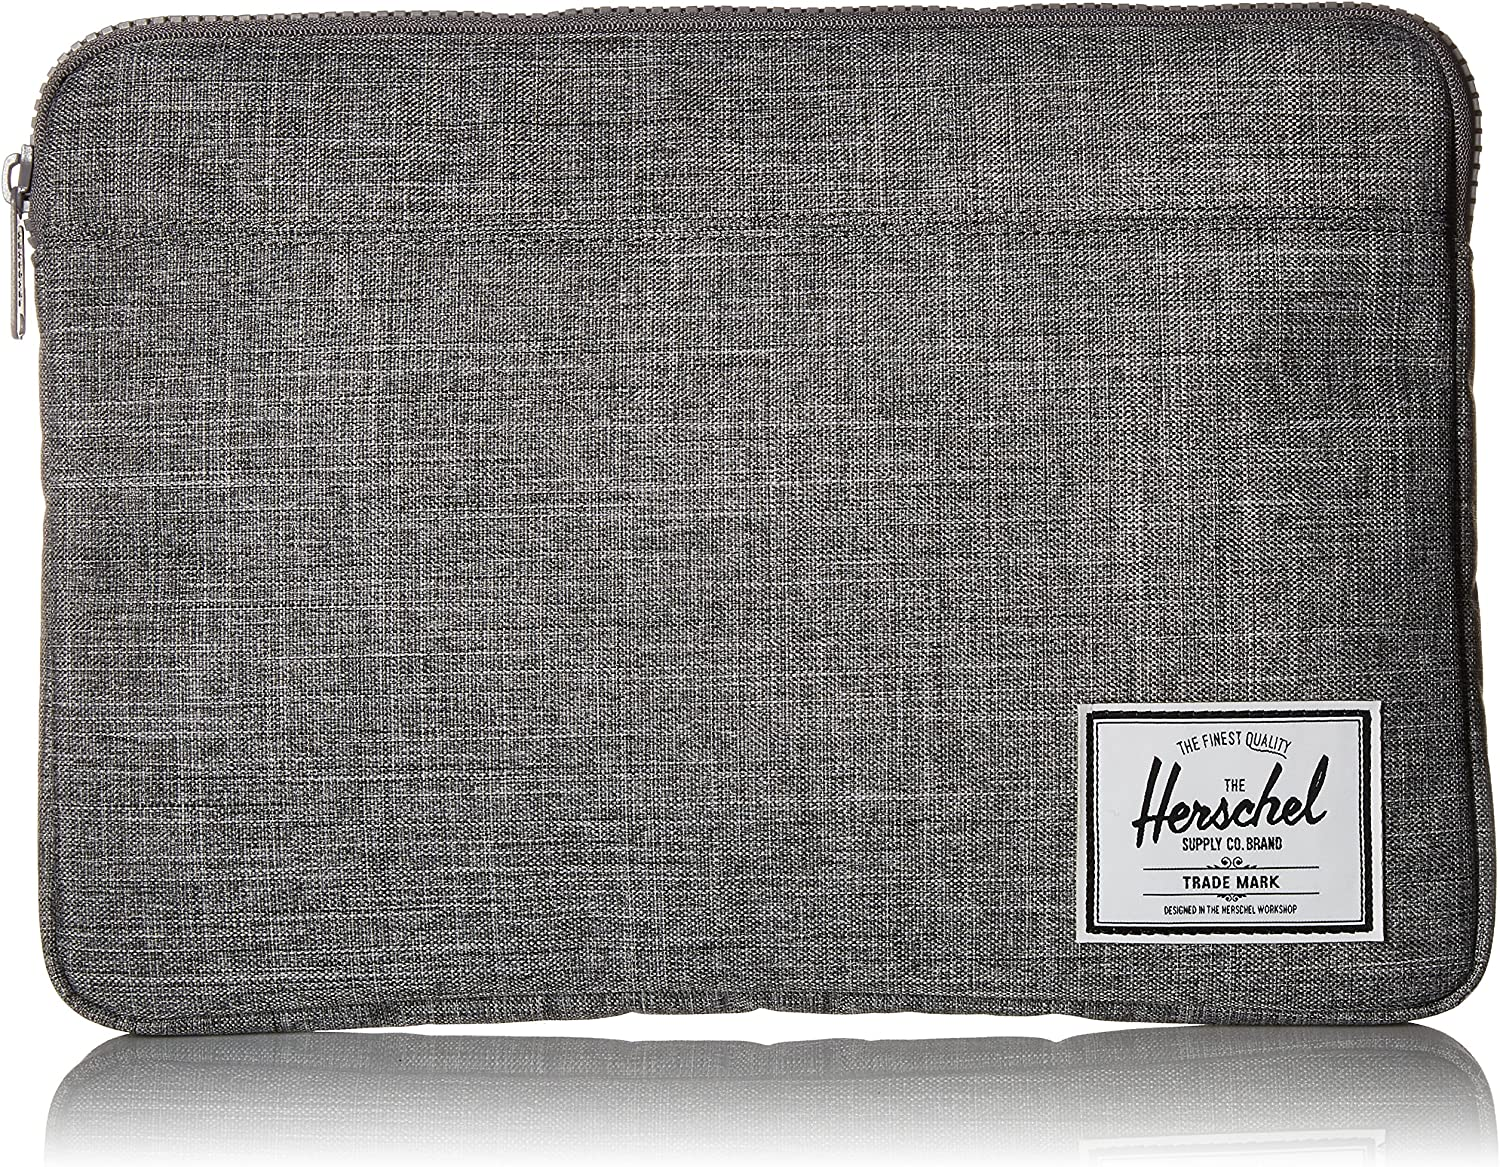 Herschel Anchor Sleeve for MacBook/iPad, Raven Crosshatch, 13-Inch